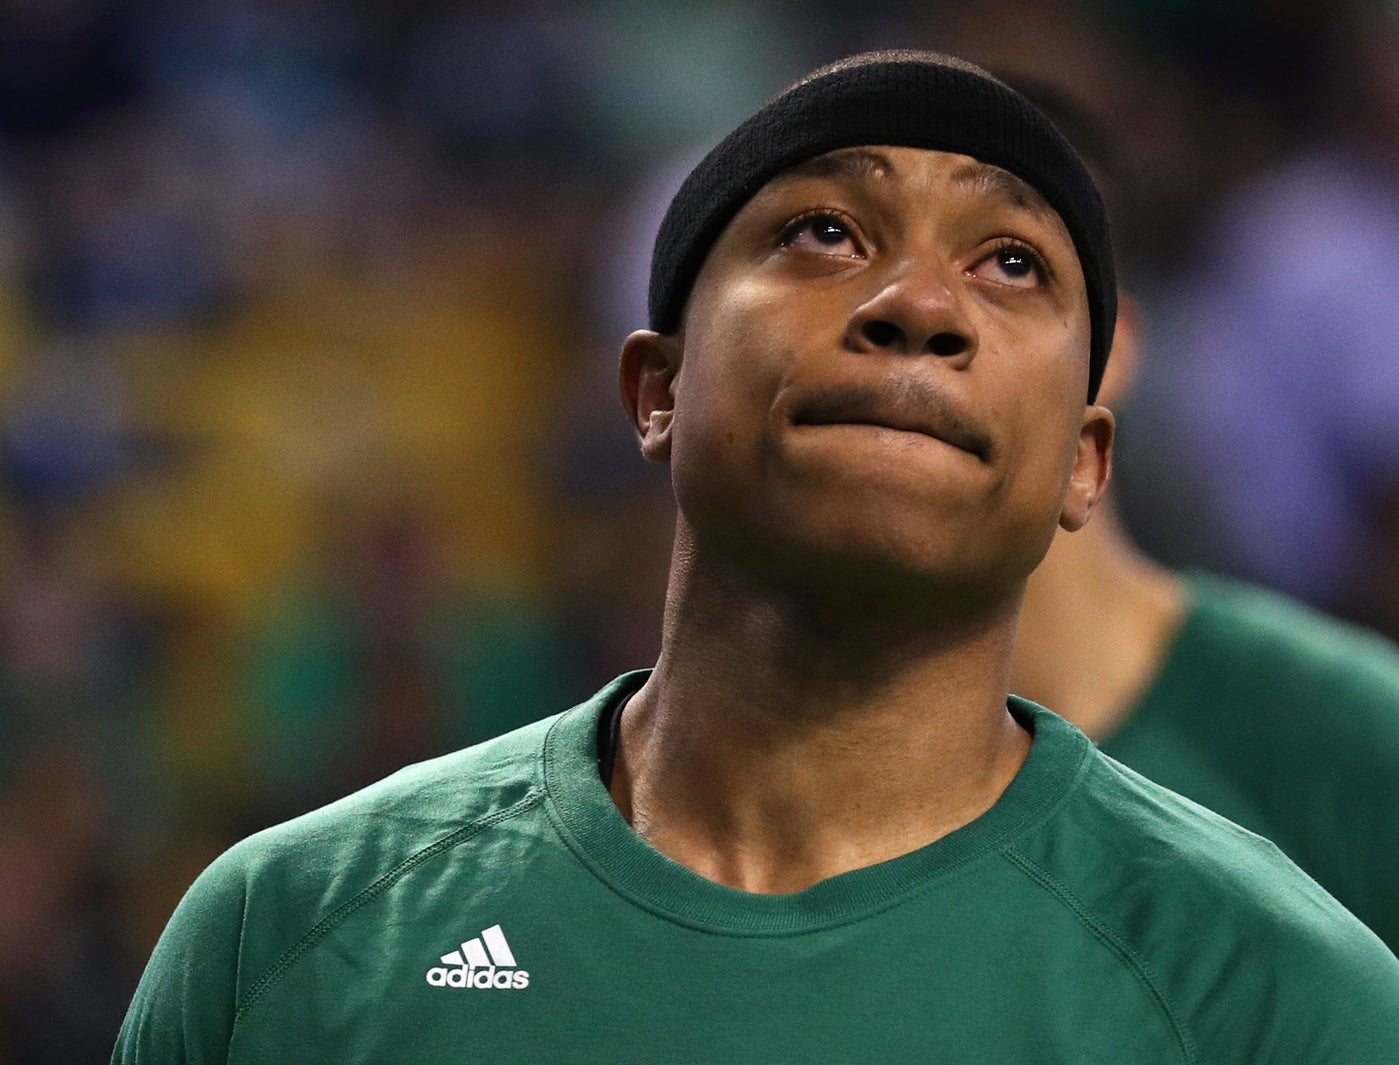 The Boston Celtics point guard held is head high as he made the difficult, yet courageous, decision to play in Game 1 of the NBA playoffs on Easter Sunday.